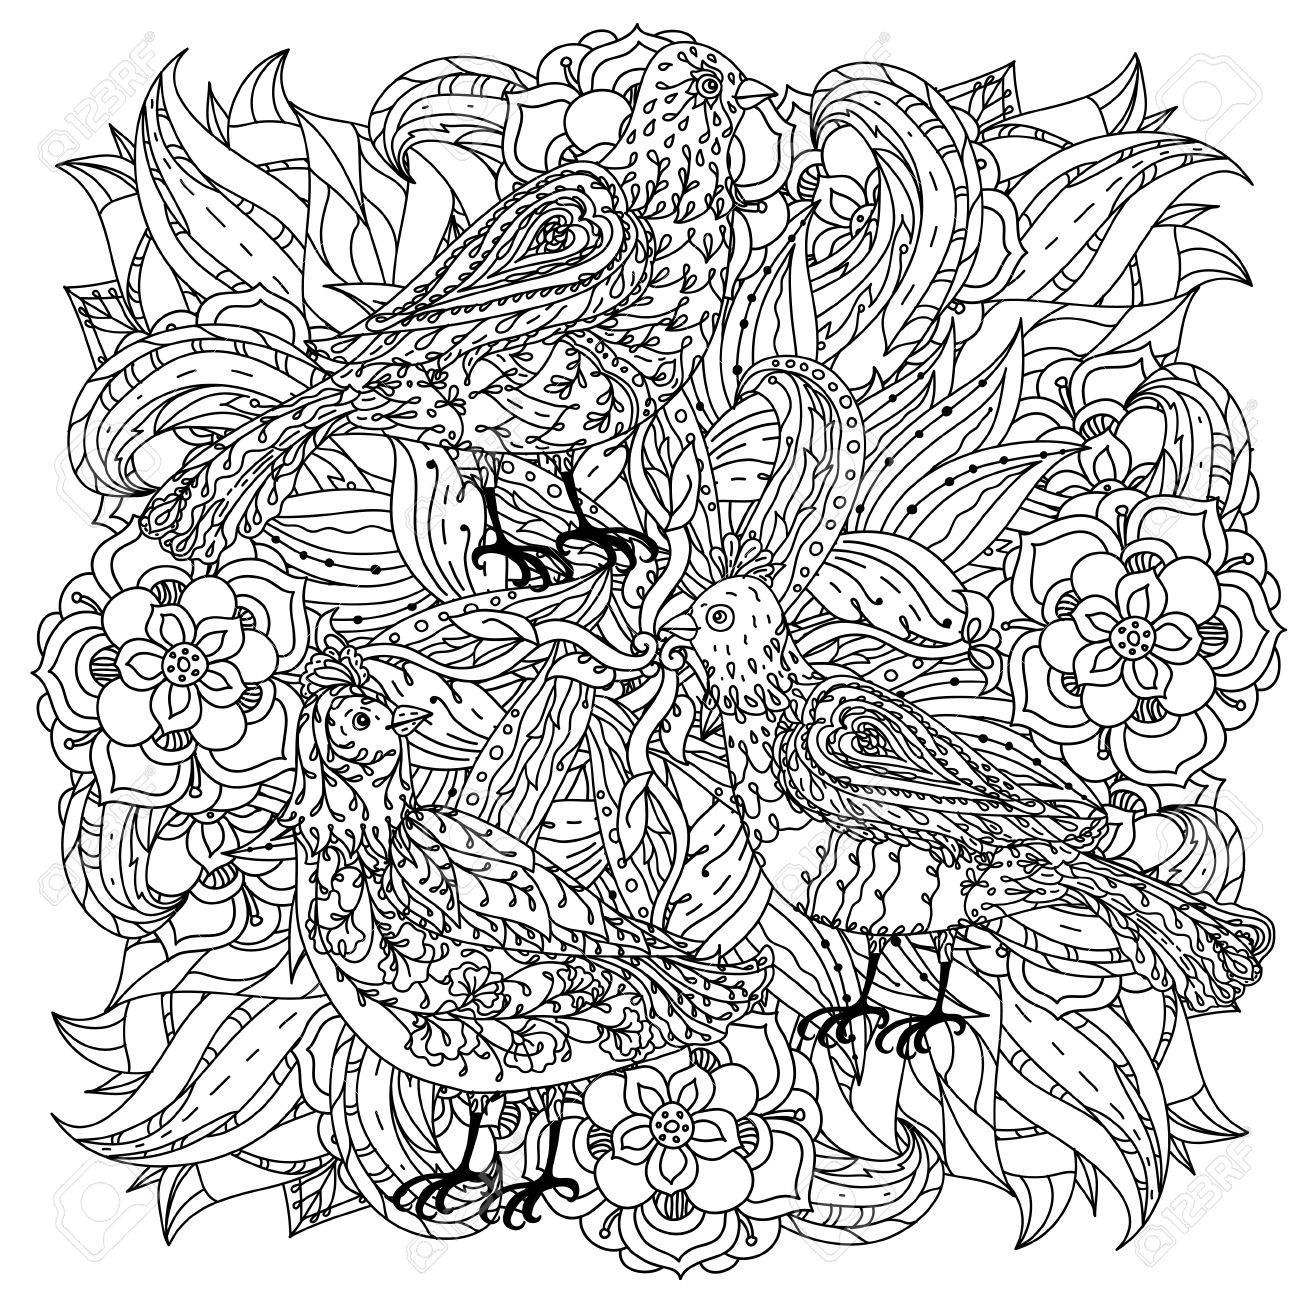 1300x1300 Contoured Mandala Shape Flowers And Birds For Adult Coloring Book